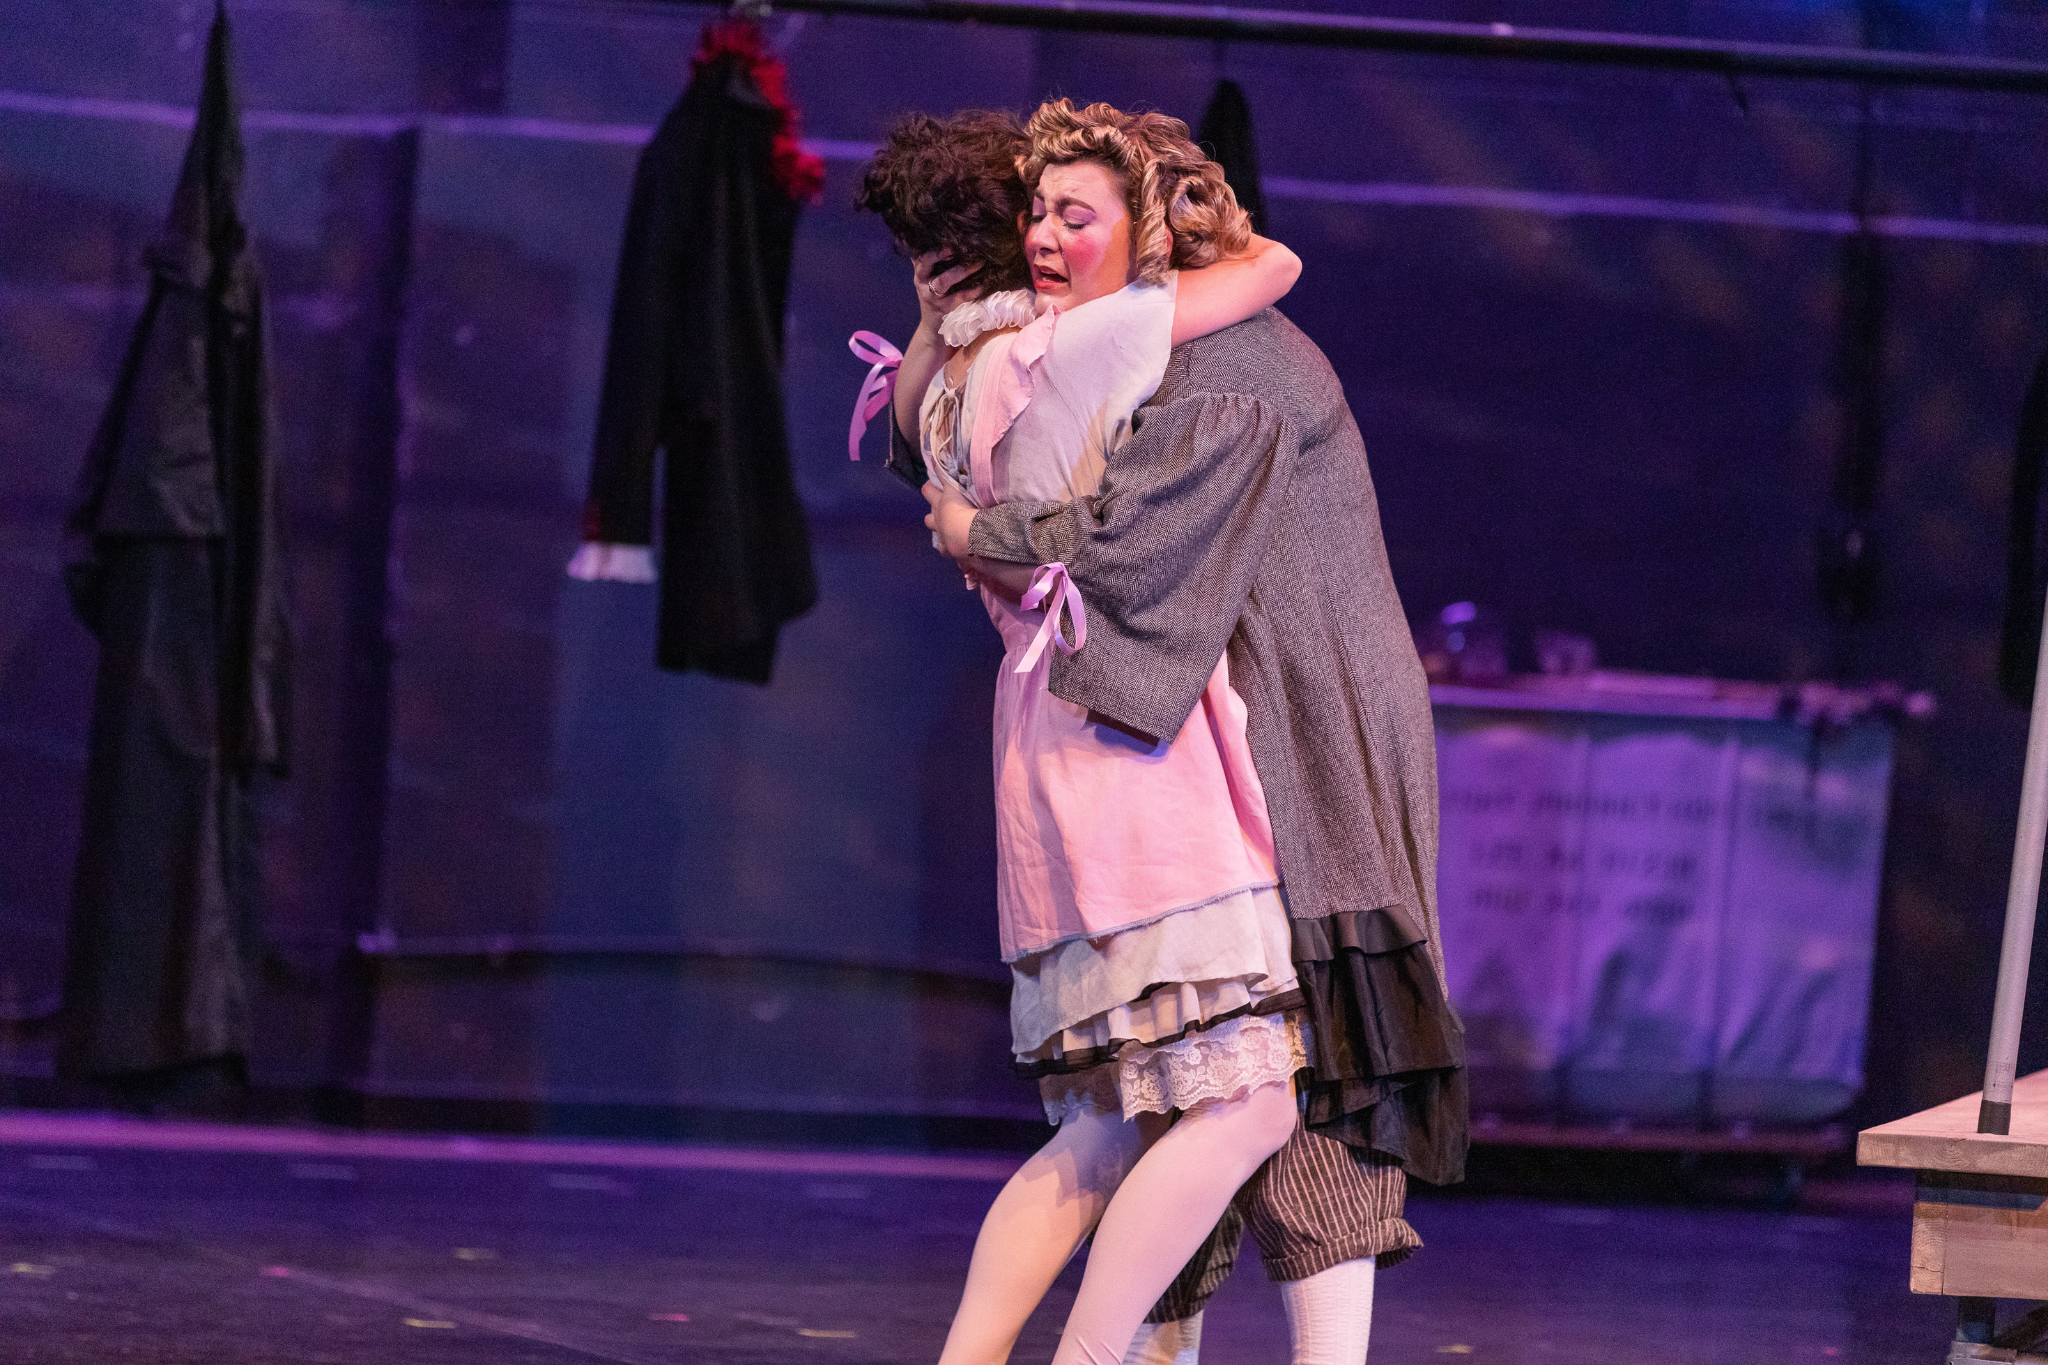 Erika Anclade (Juliet) and Ashley Knaack (Nurse )in Romeo & Juliet, CSC2, 2019-Photo by Nile Hawver